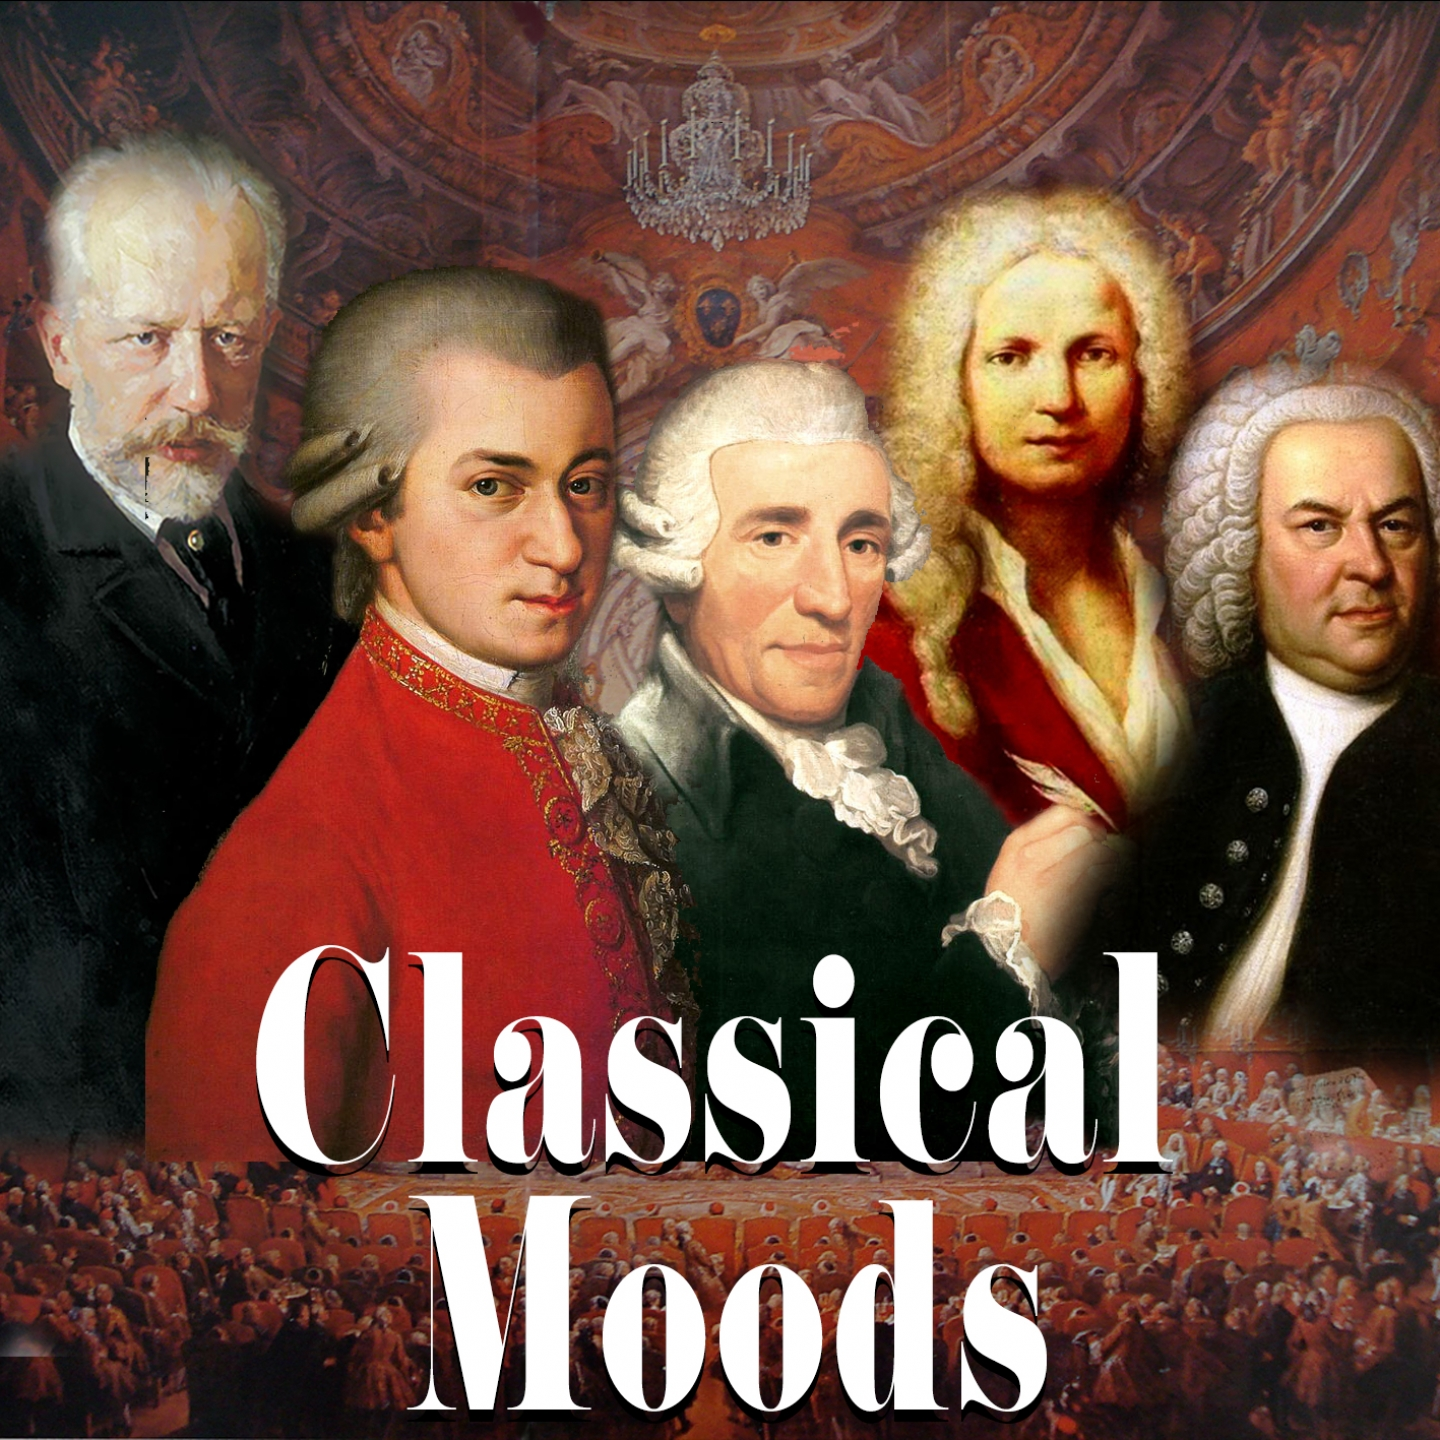 Classical Moods: 50 Classical Music Masterpieces